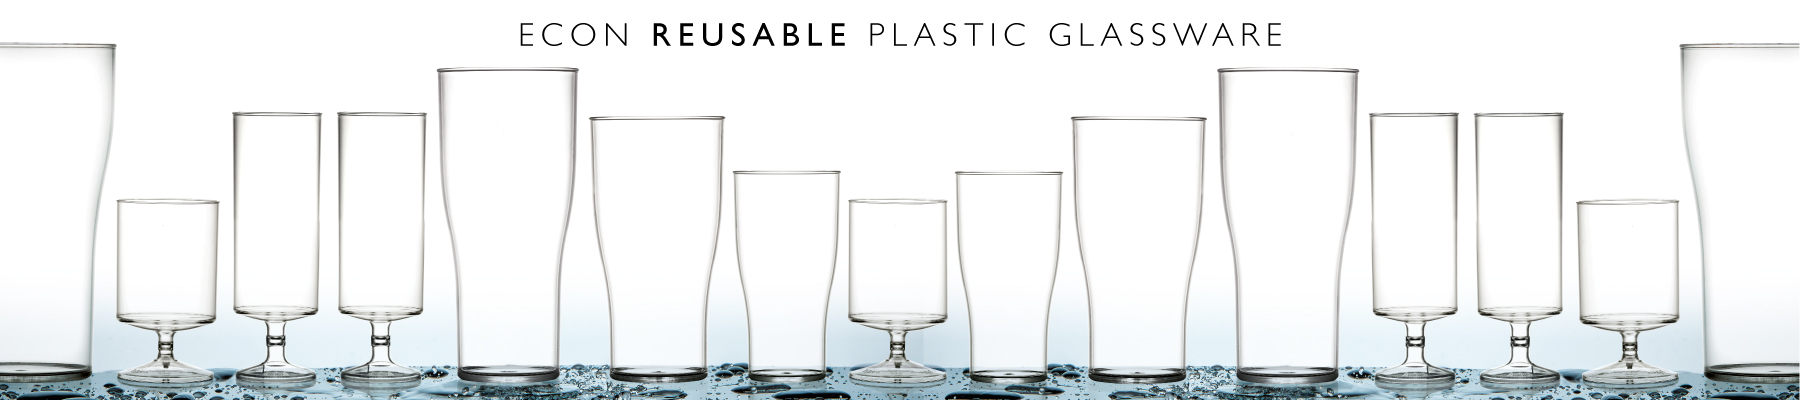 Reusable plastic drinking glassware for catering in Chandlers Ford Hampshire